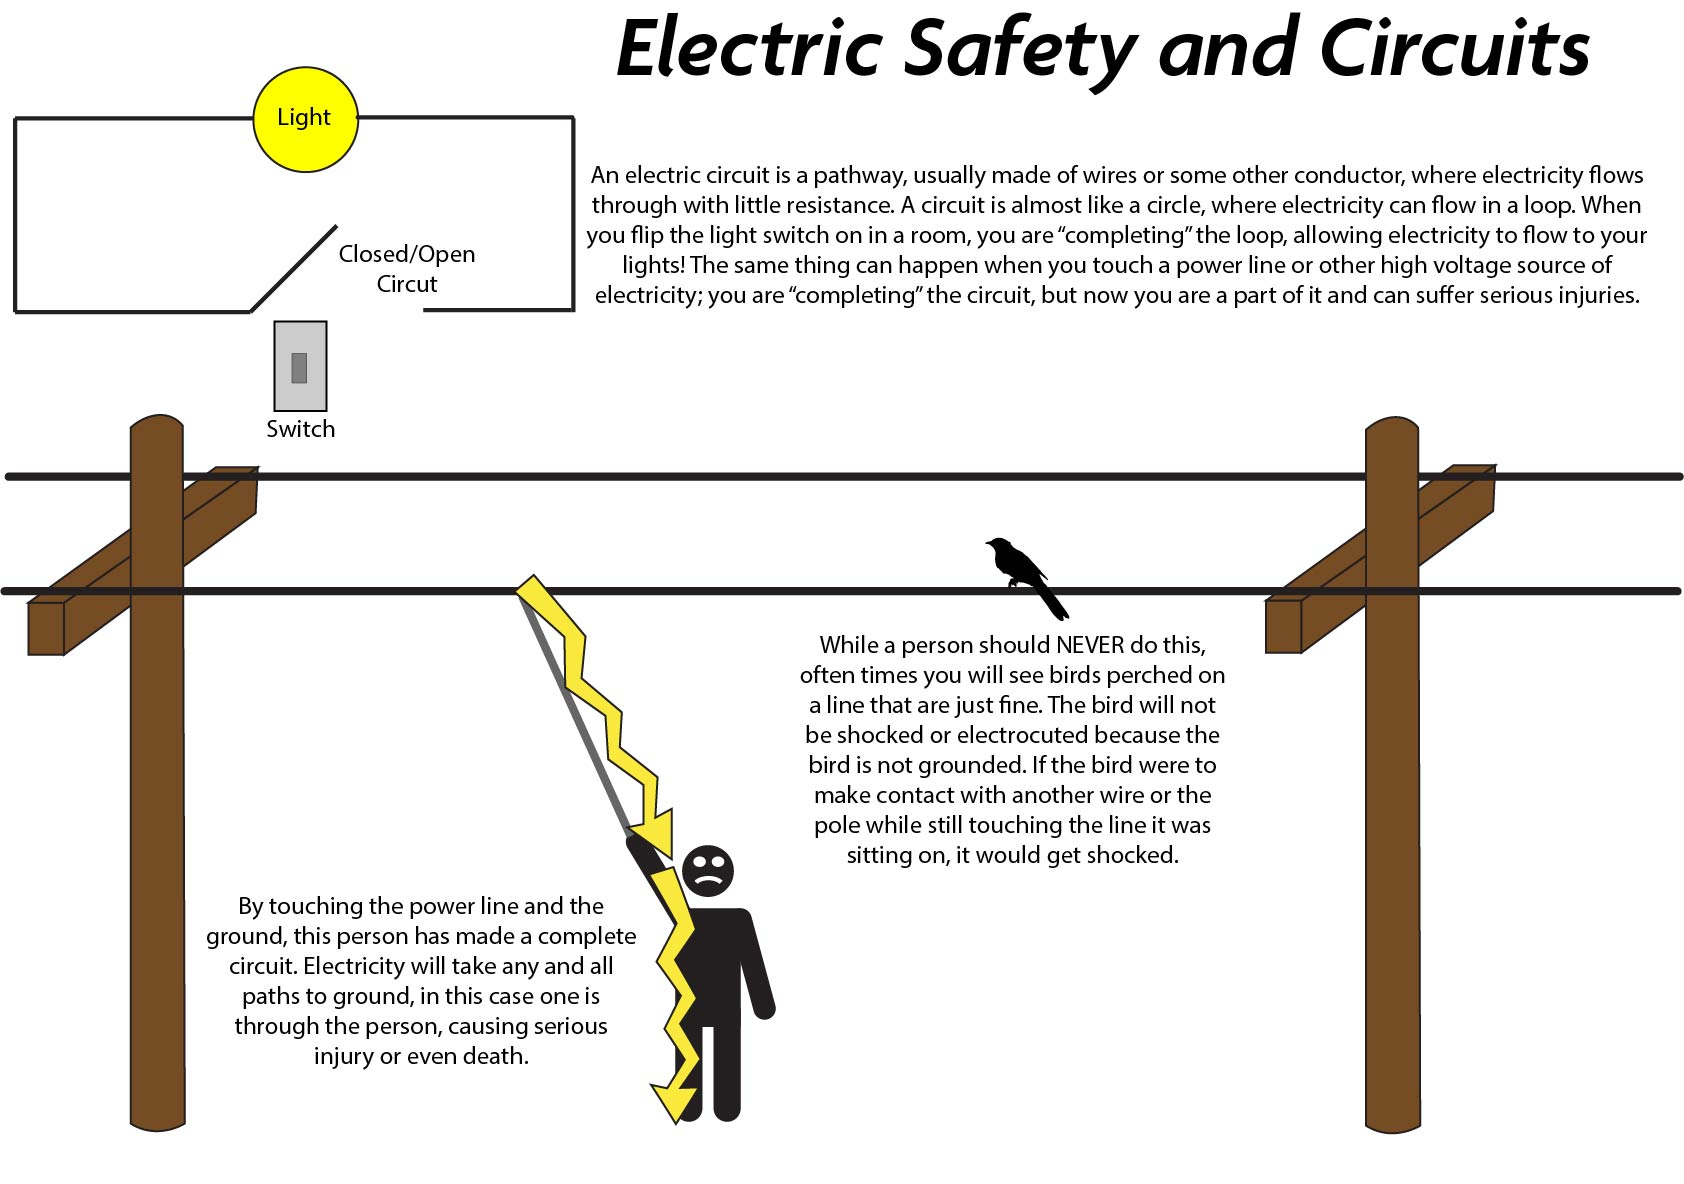 Safety Southern Pioneer Circuit Vs Parallel For Kids Using The Above As An Dangers Of Working Around Electricity You Dont Always Need Wires To Make A Complete